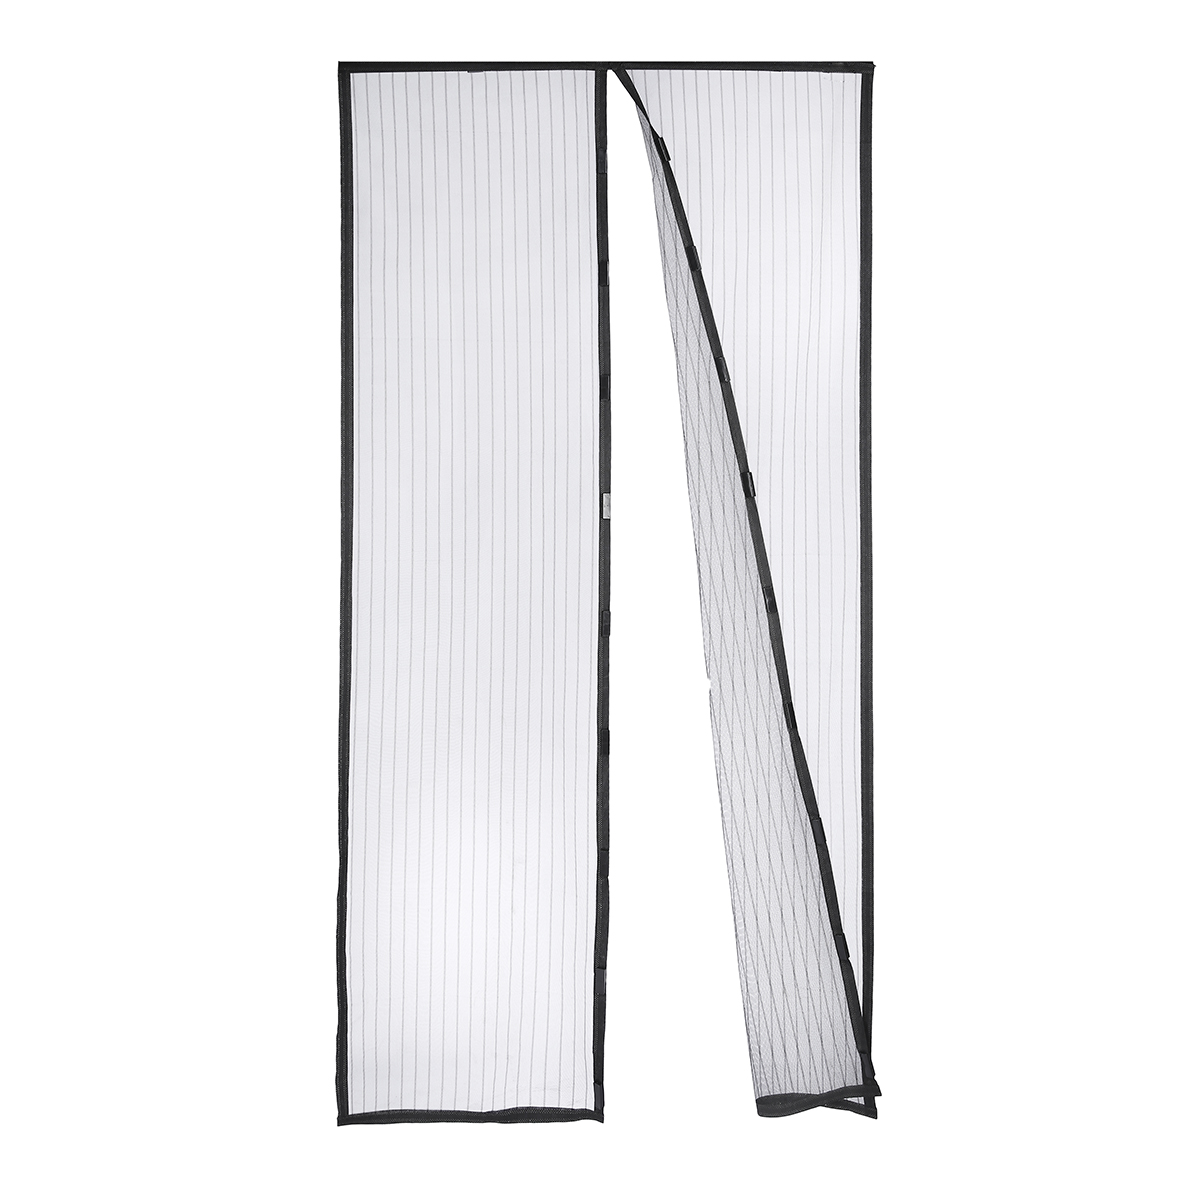 Magnetic Flying Insect Door Window Curtain Mesh Magic Bug Mesh Fly Screen Black Ebay